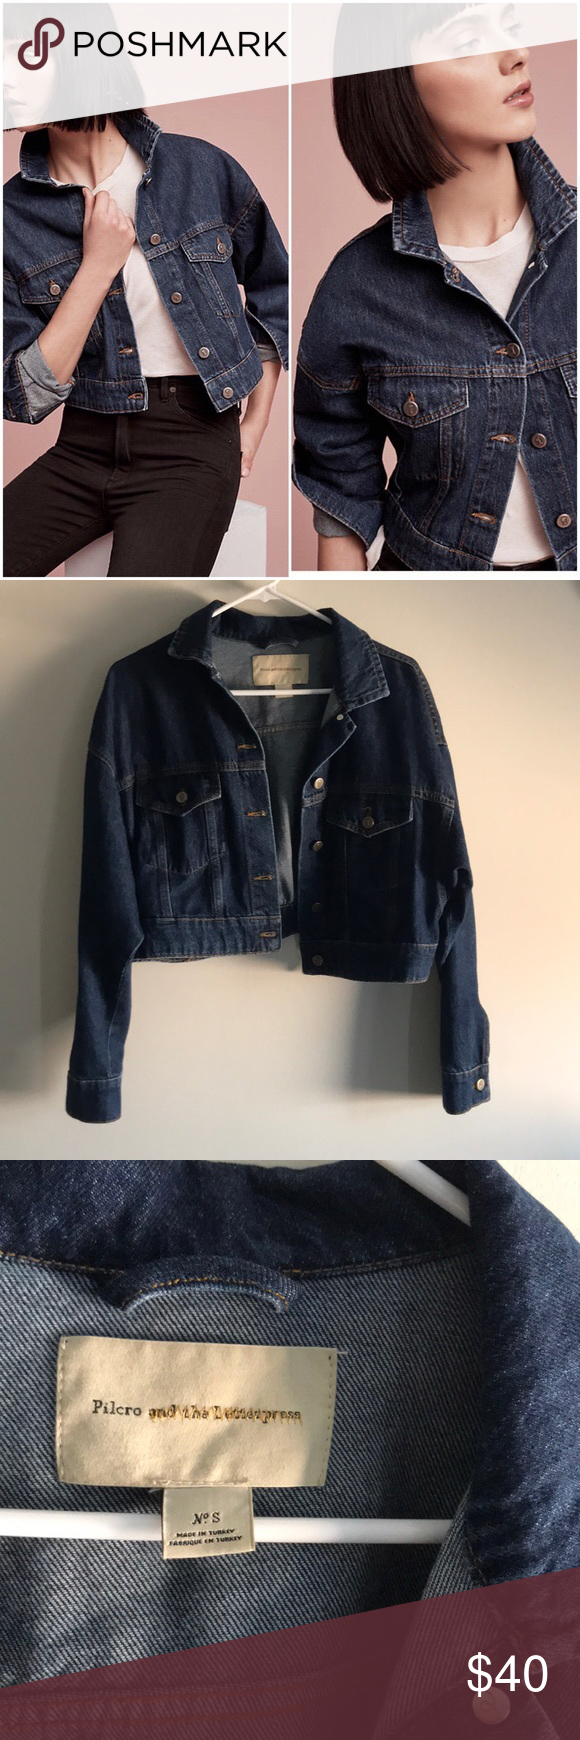 8ca132400e5 Anthropologie Pilcro Denim Trucker Jacket Size S Size Small Pilcro and the  Letterpress denim jacket.